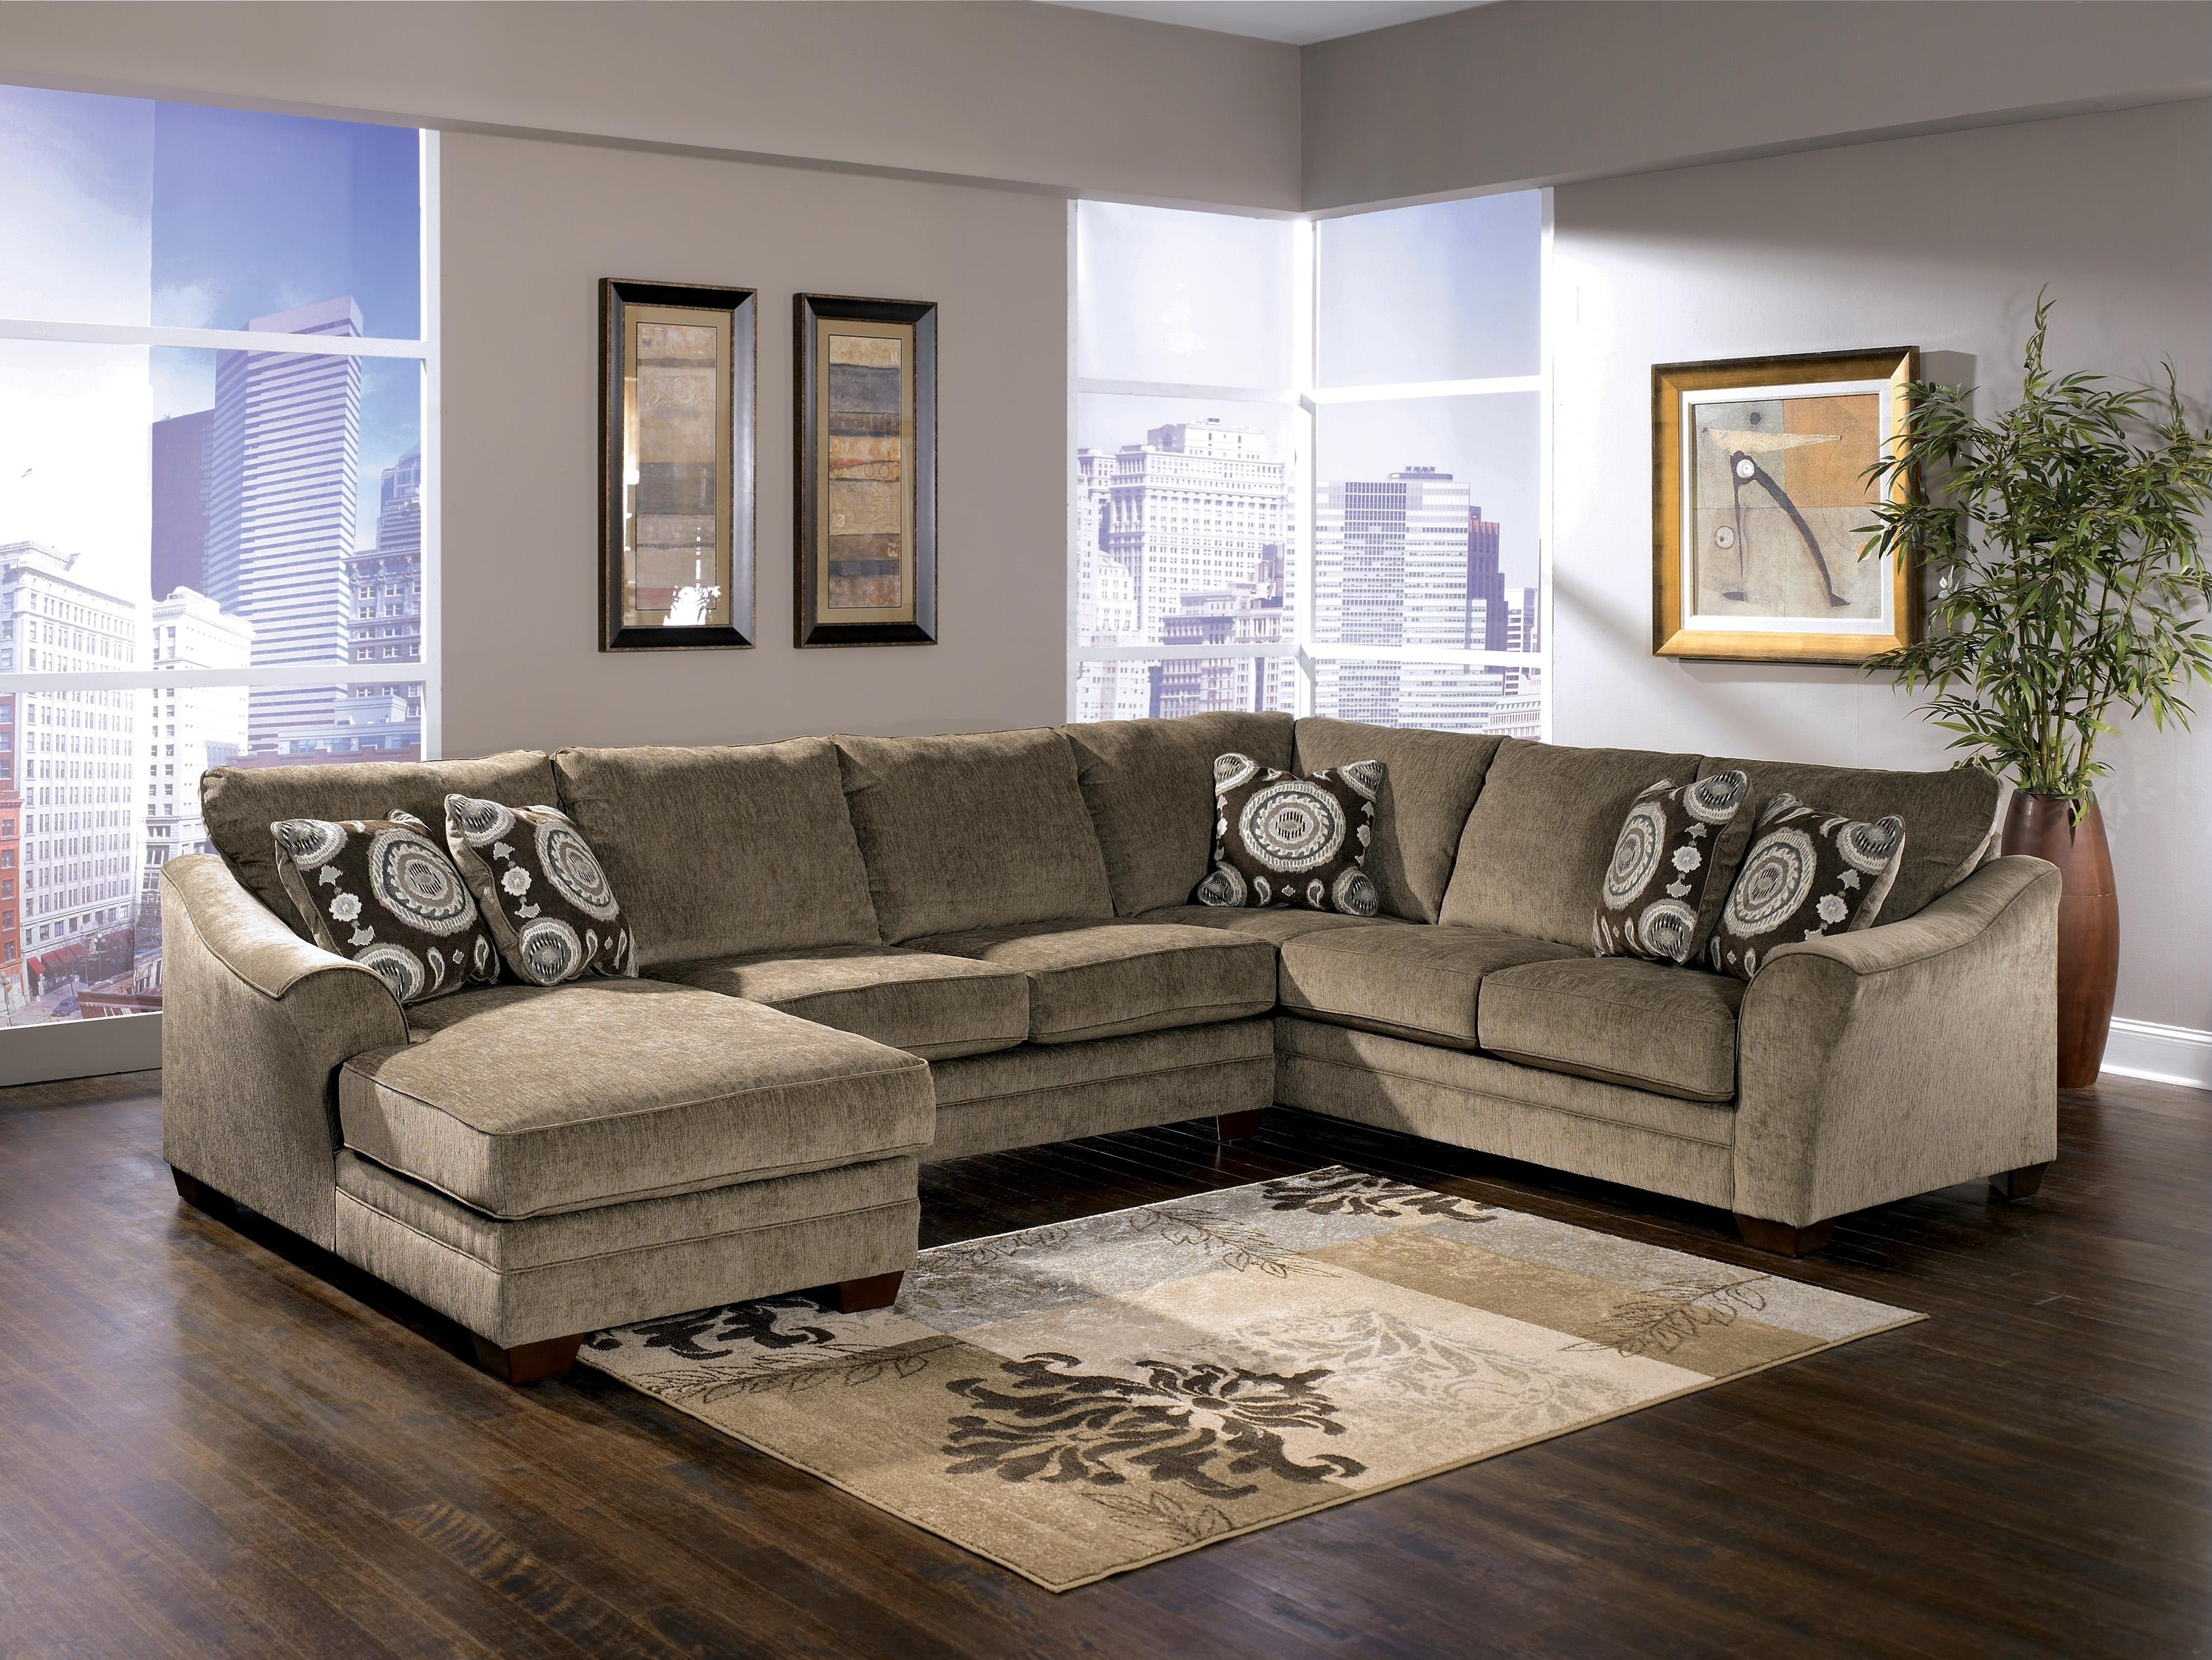 Fashionable Signature Designashley Cosmo – Marble Sectional Sofa With Within Peterborough Ontario Sectional Sofas (View 13 of 15)